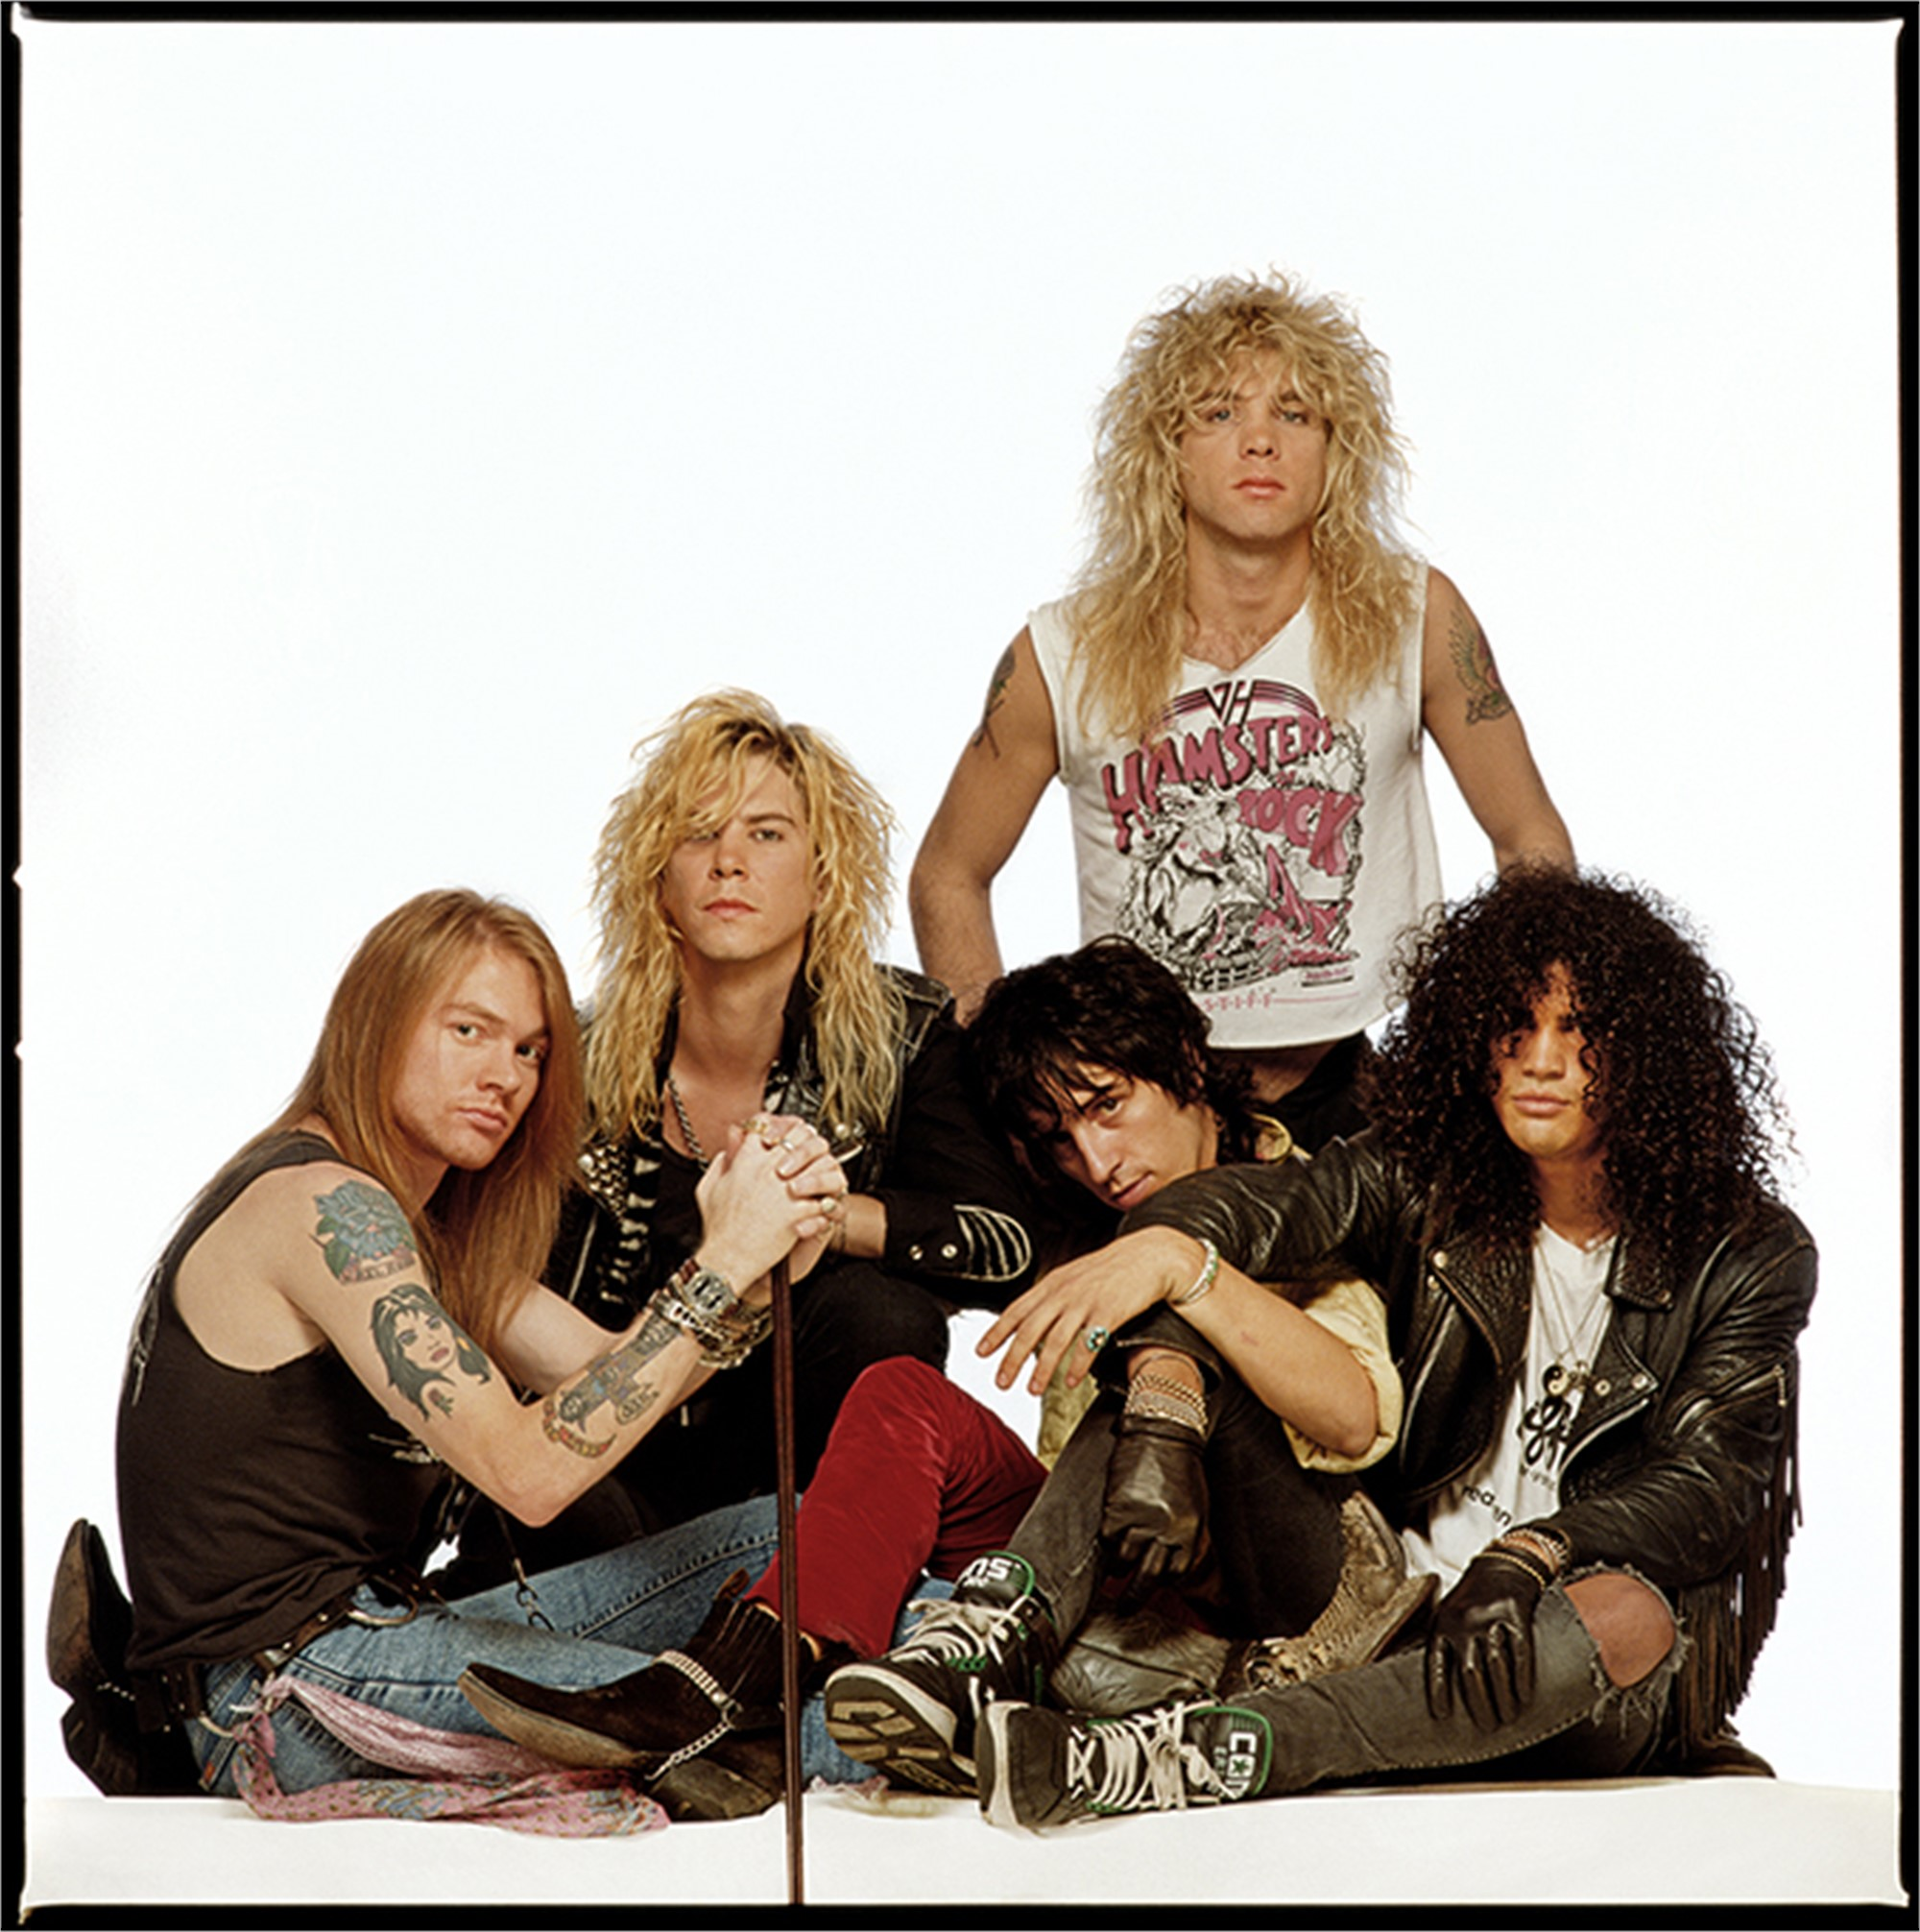 88138 Guns N Roses Rolling Stone Cover on White Color by Timothy White